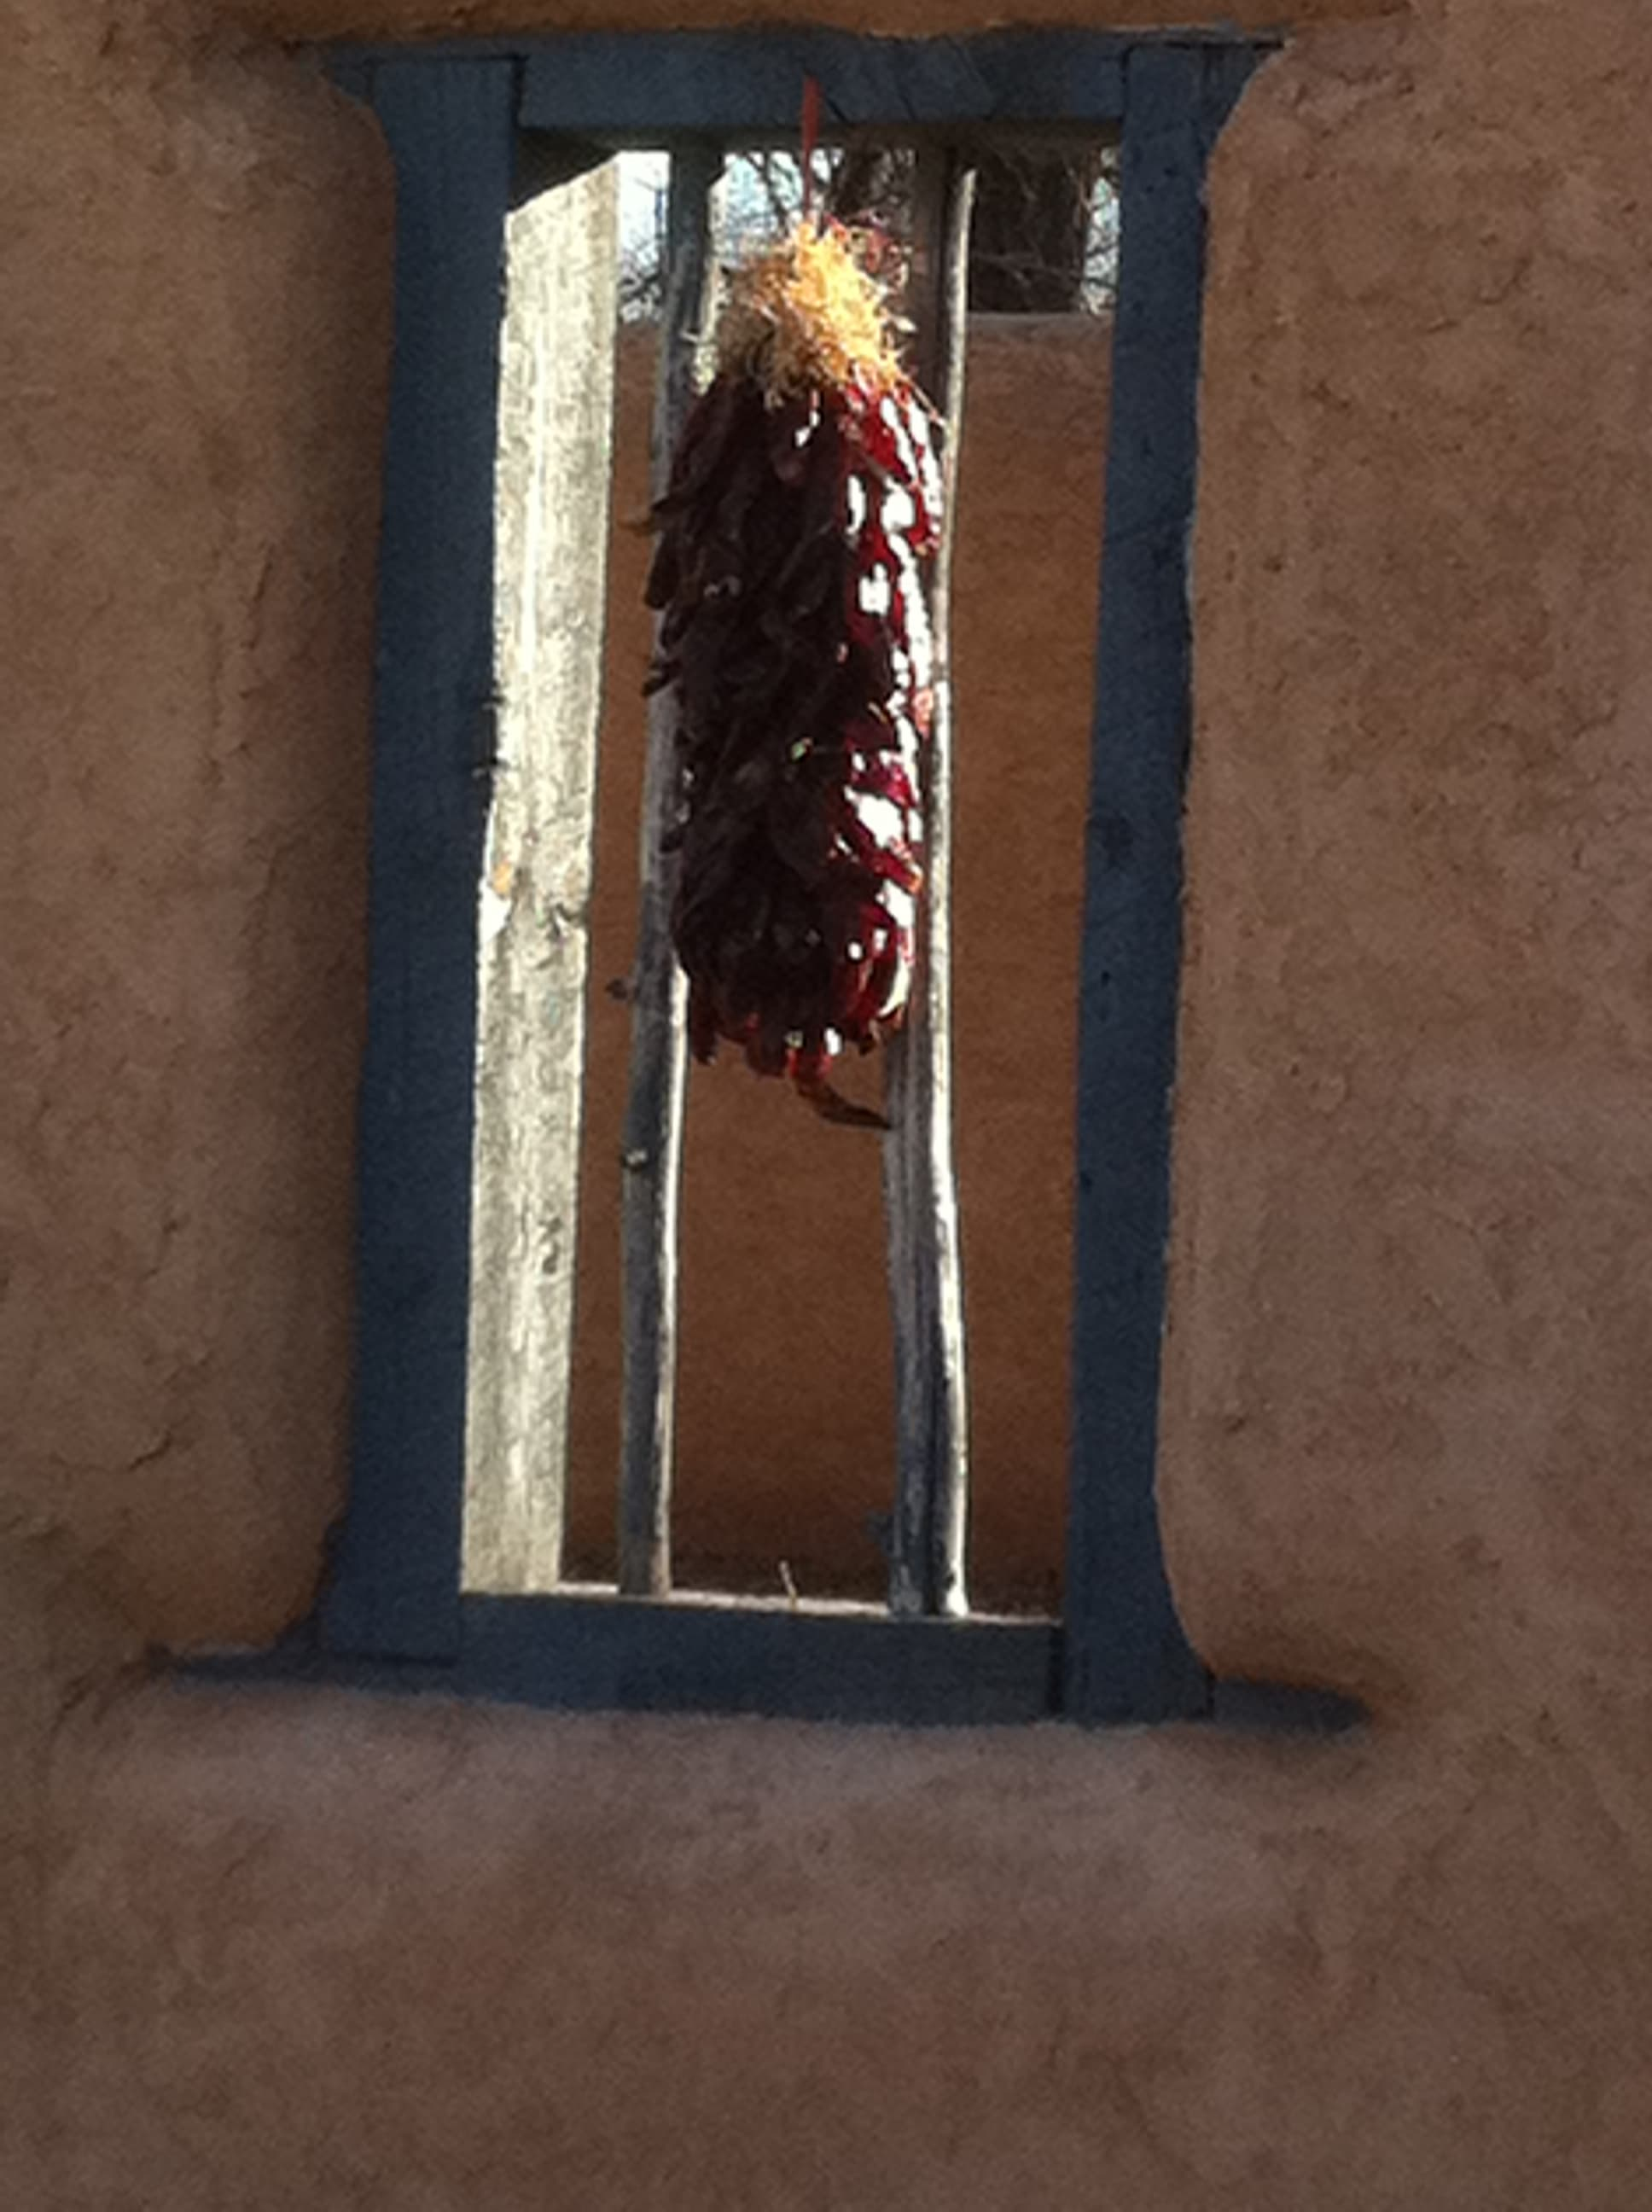 Chili ristra hanging in the window of an adobe wall in Albuquerque New Mexico.